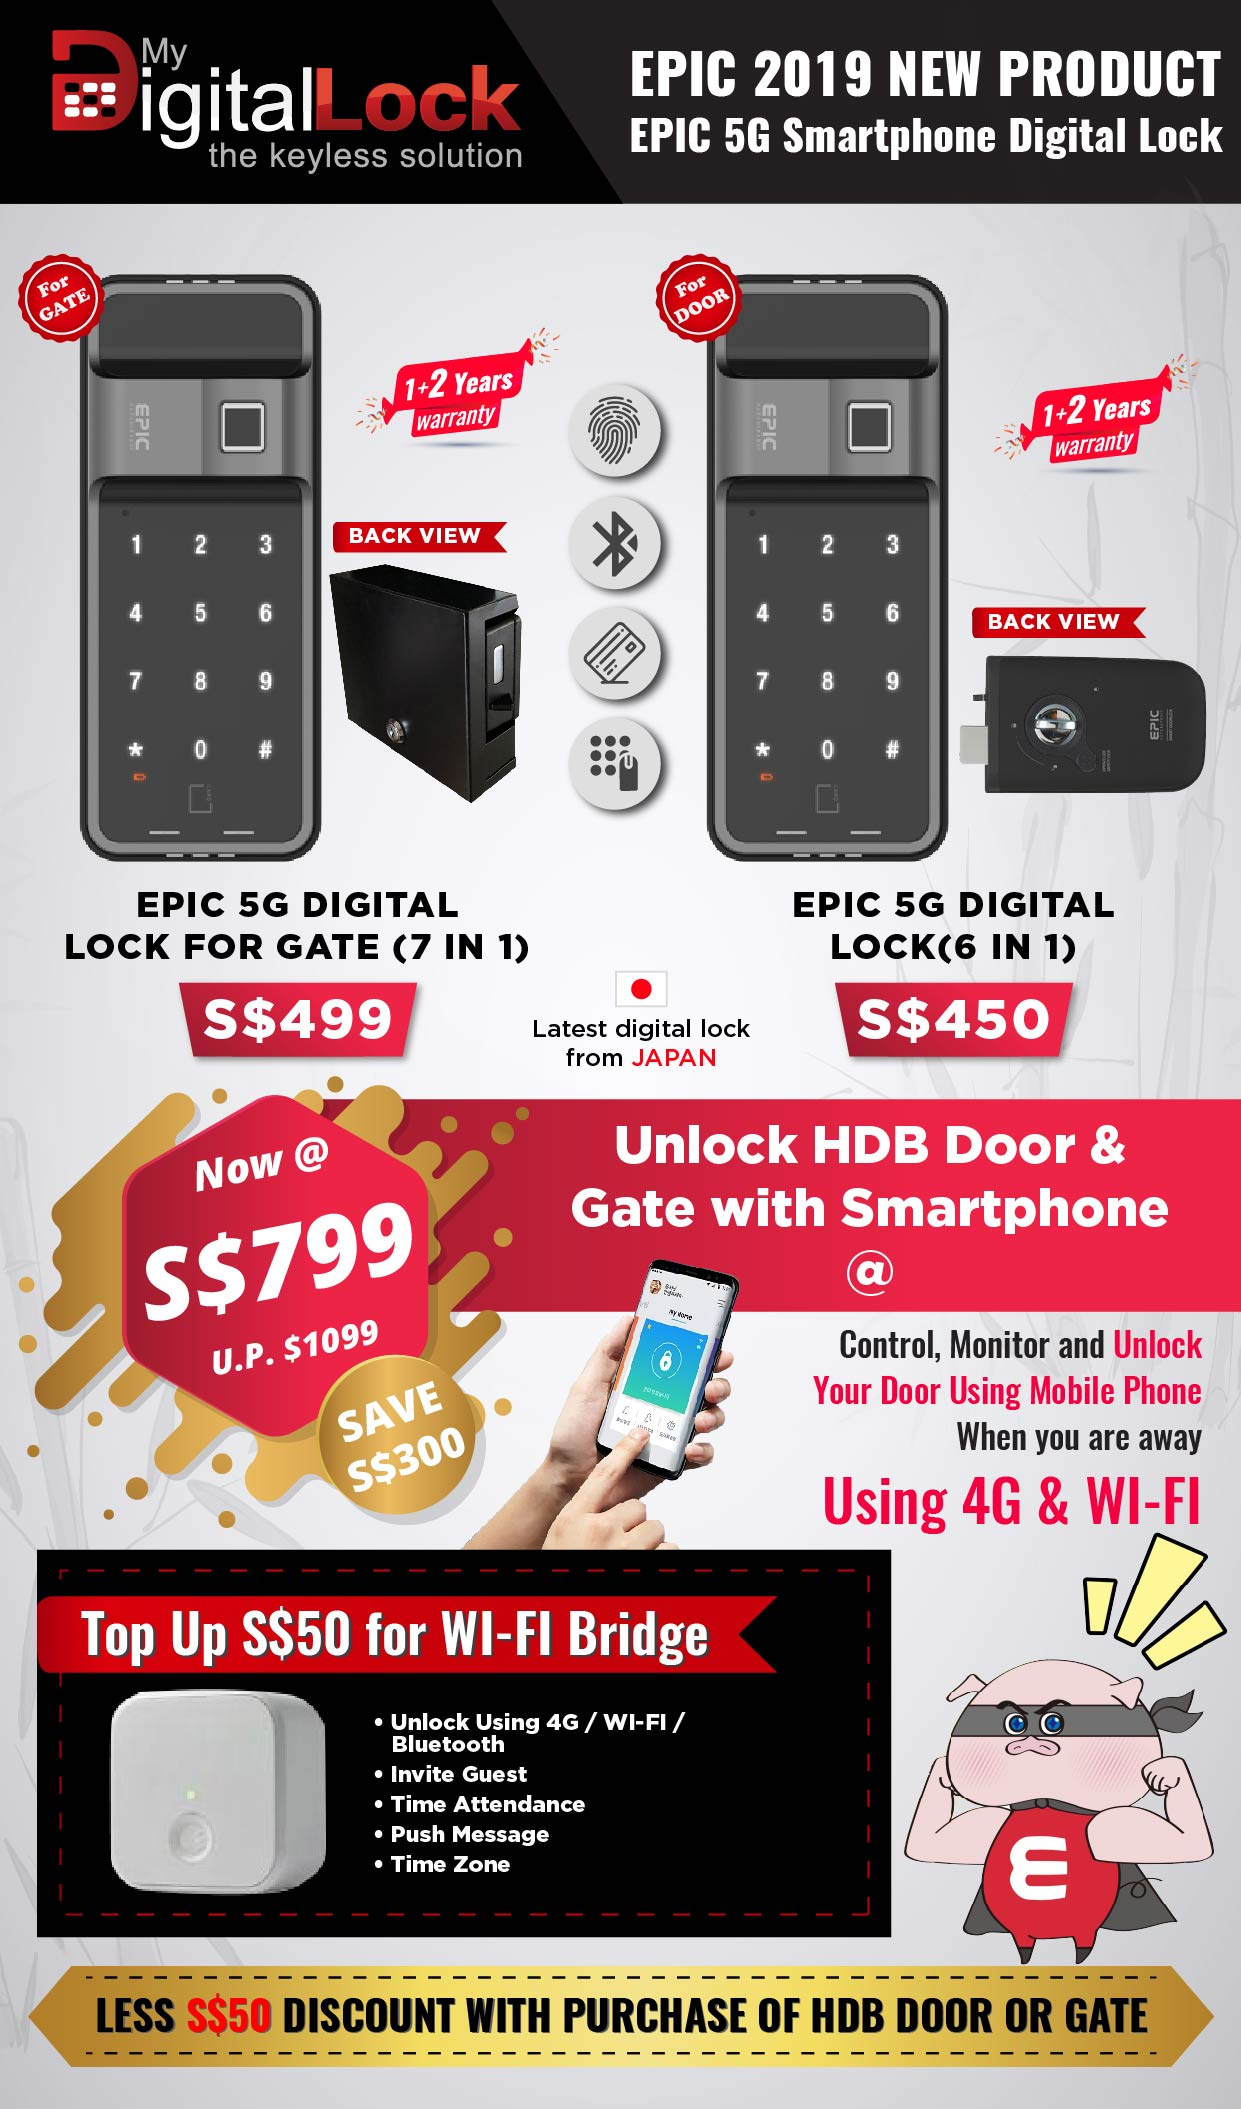 Buy EPIC 5G Digital Lock for Gate @ My Digital Lock. Call 9067 7990